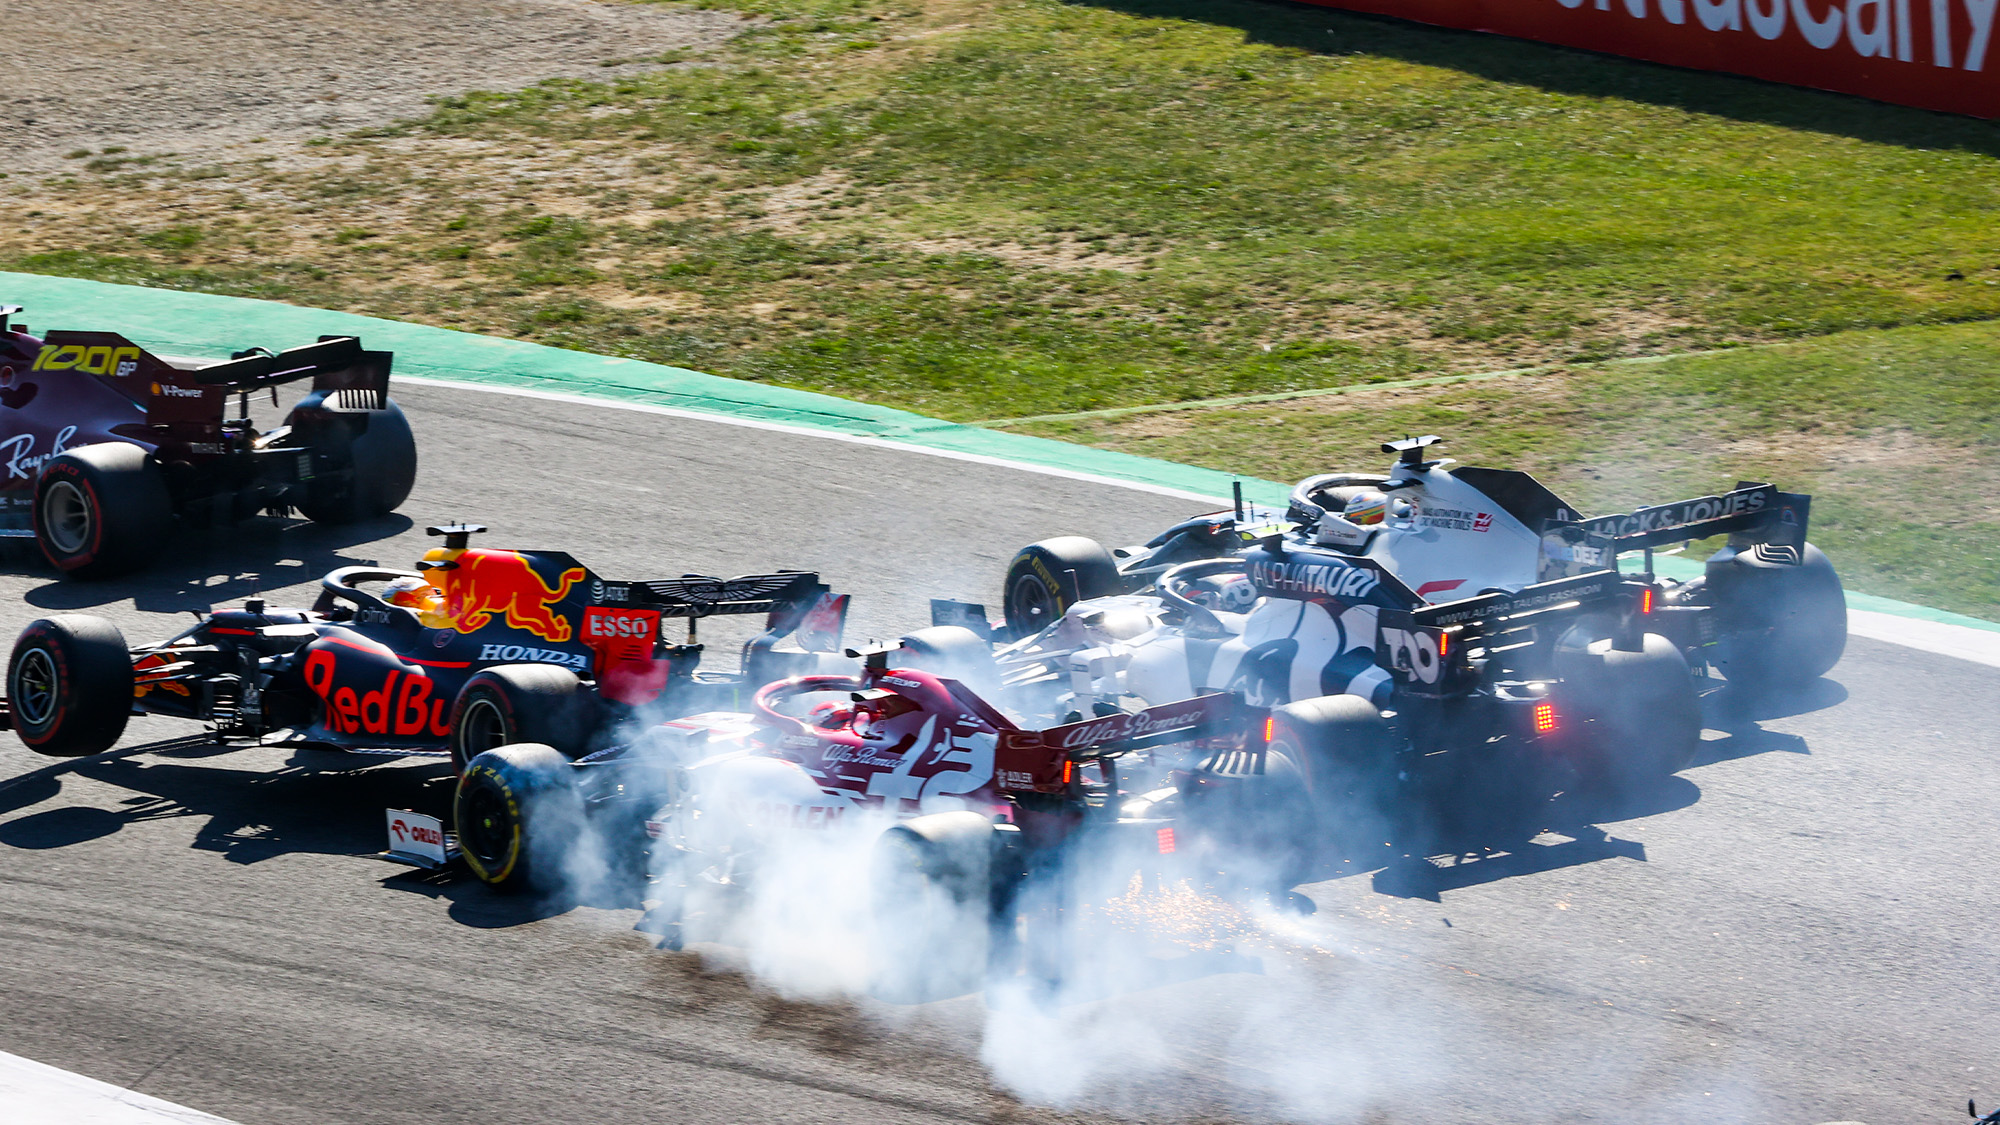 Max Verstappen and Kimi Raikkonen collide in a first lap crash during the 2020 F1 Tuscan Grand Prix at Mugello